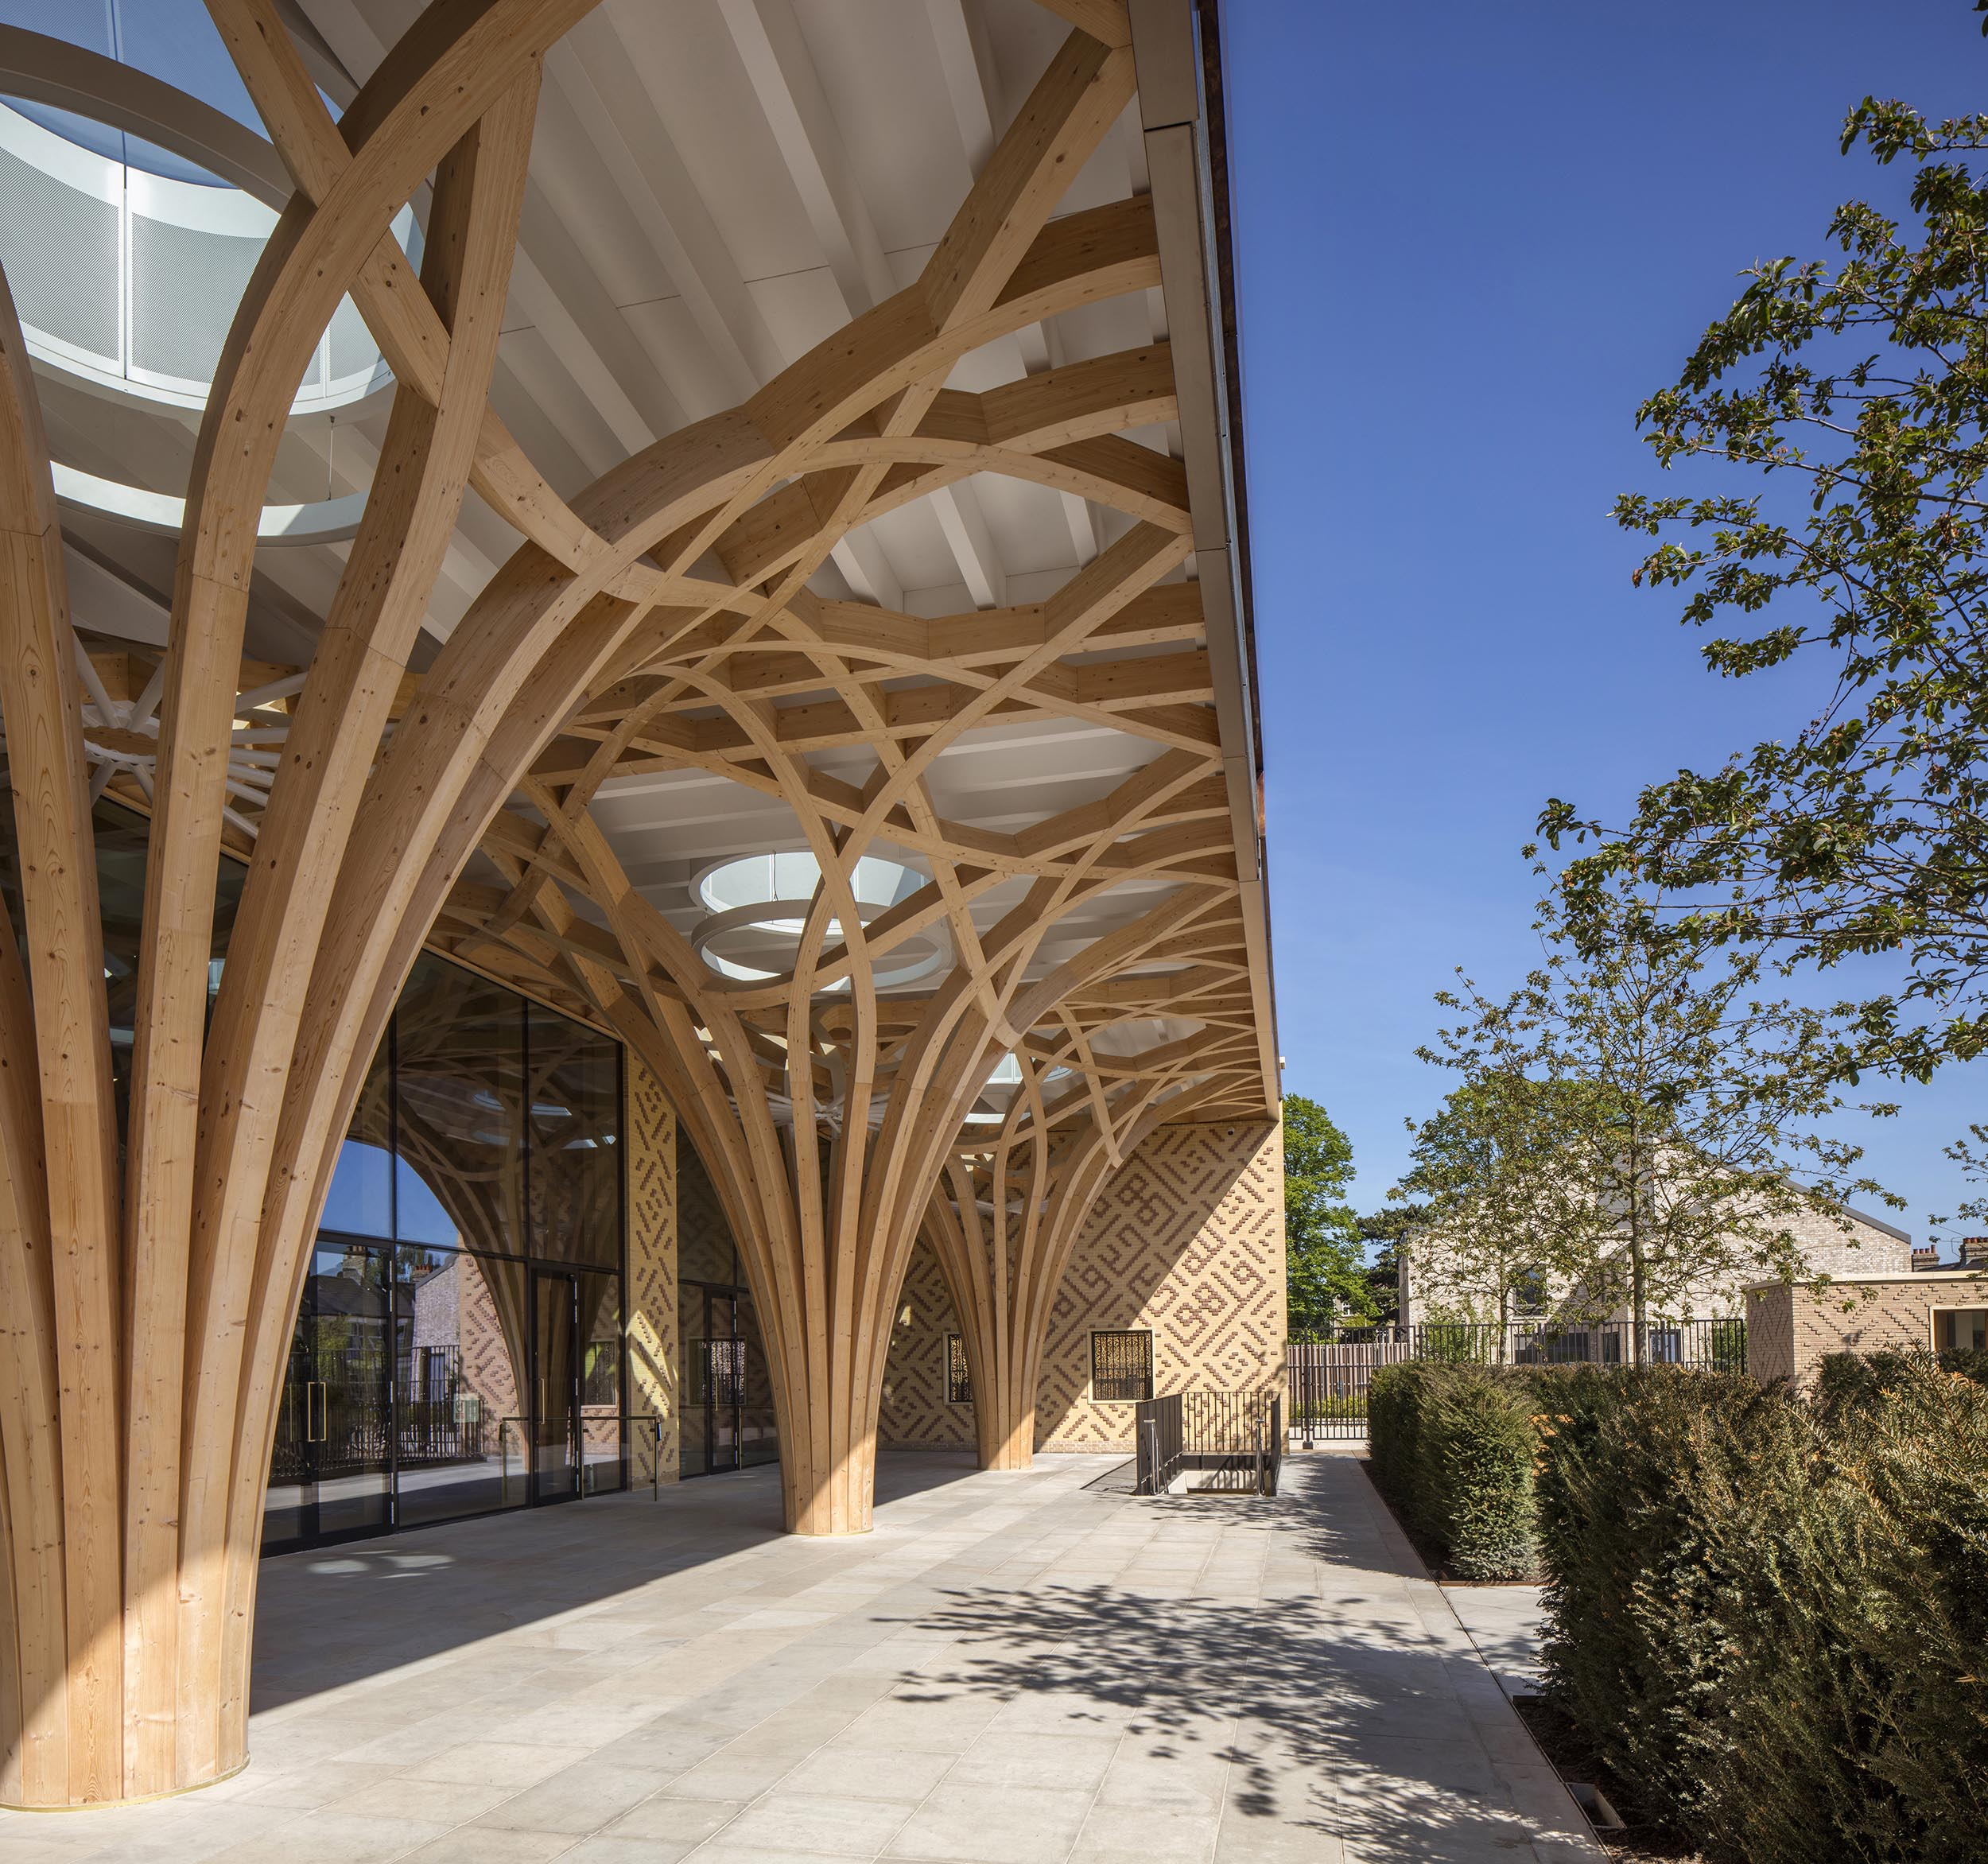 Cambridge Mosque Portico by Marks Barfield Architects, photography Morley von Sternberg